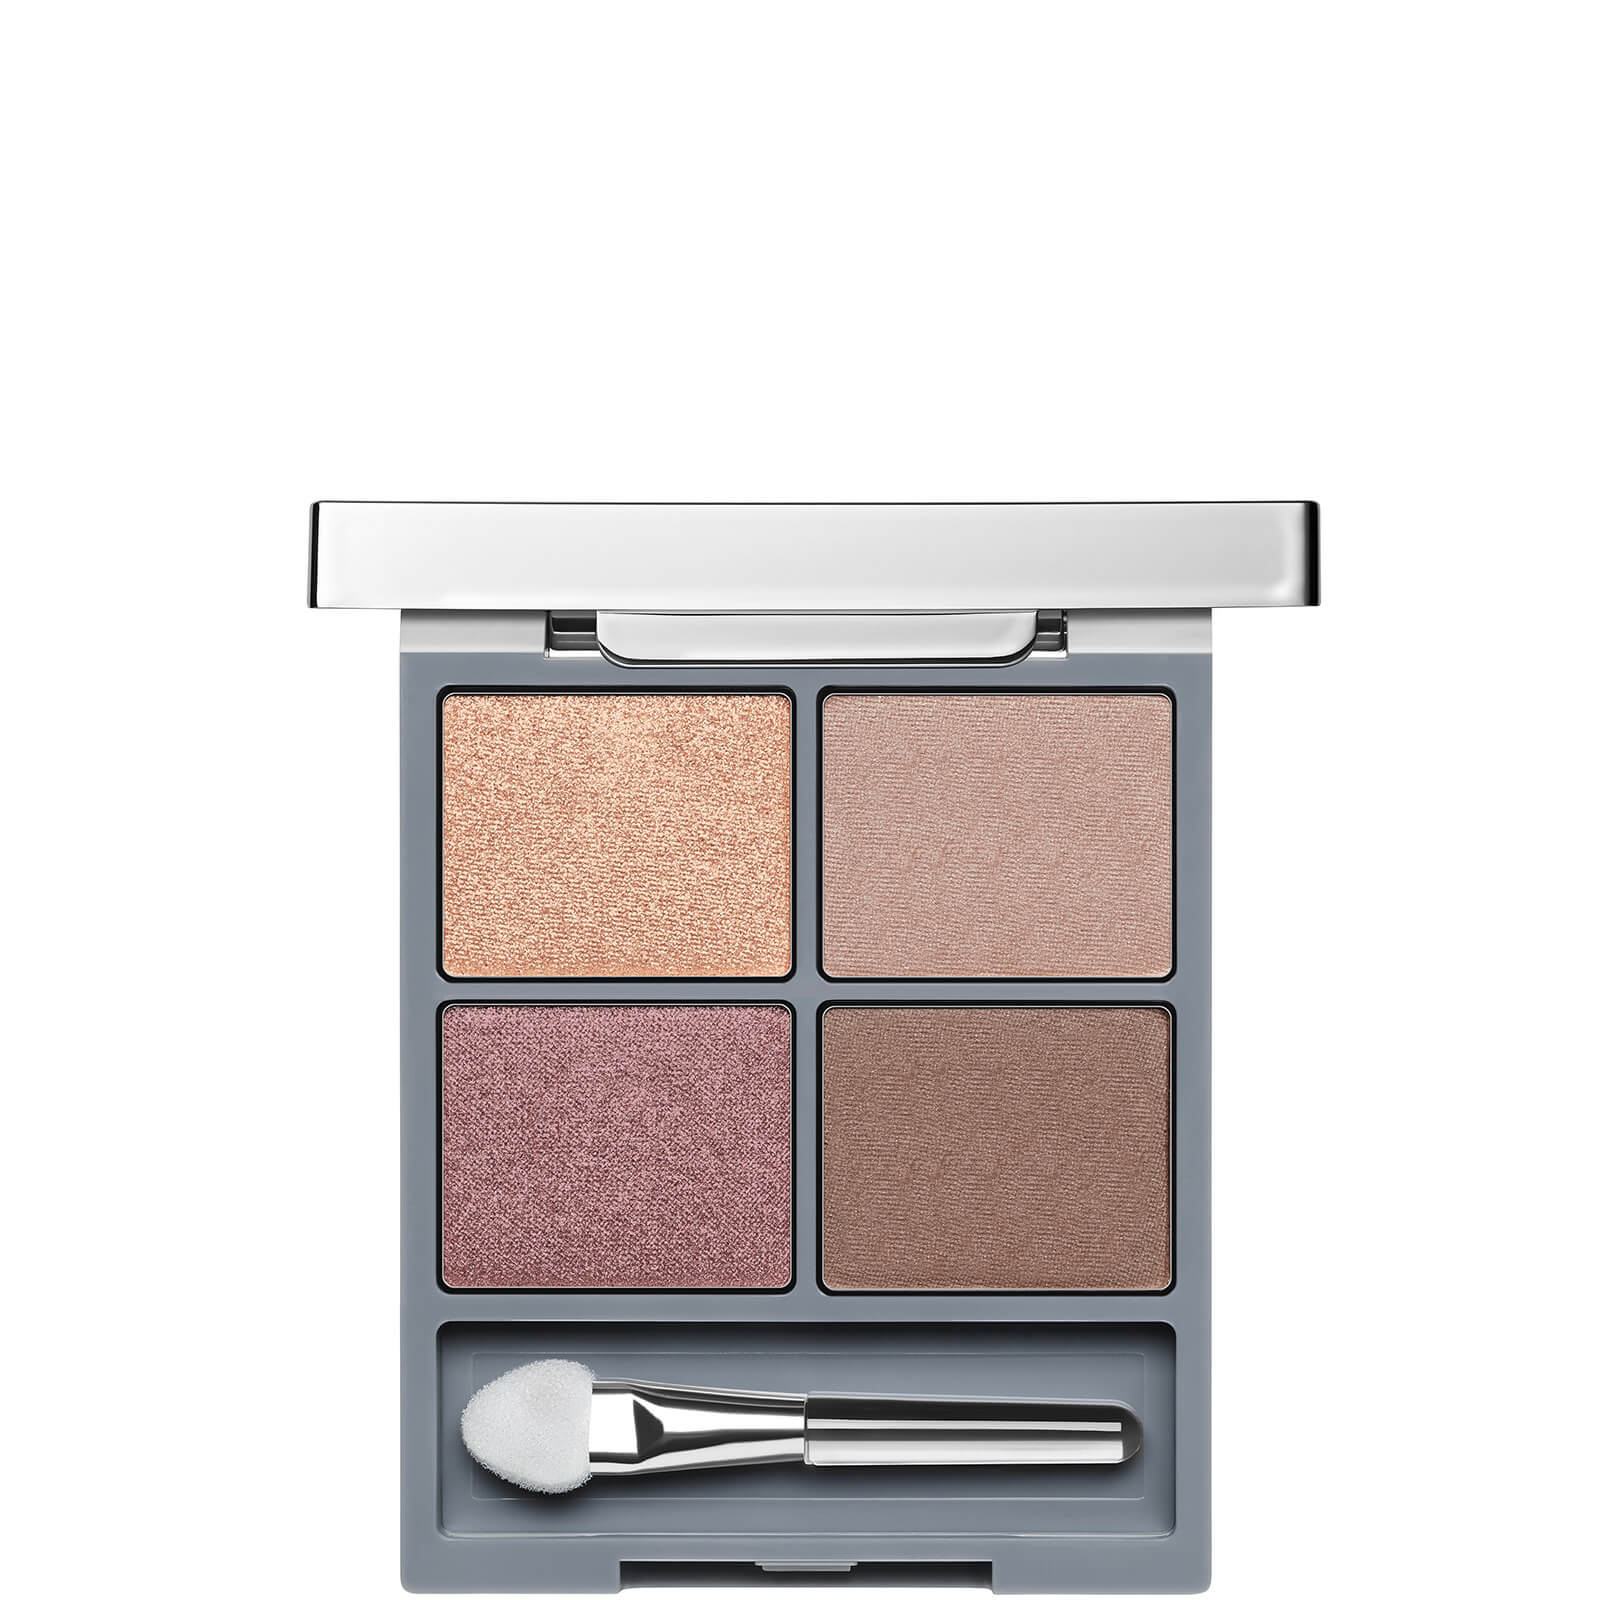 Physicians Formula The Healthy Eyeshadow 6g (Various Shades) - Rose Nude